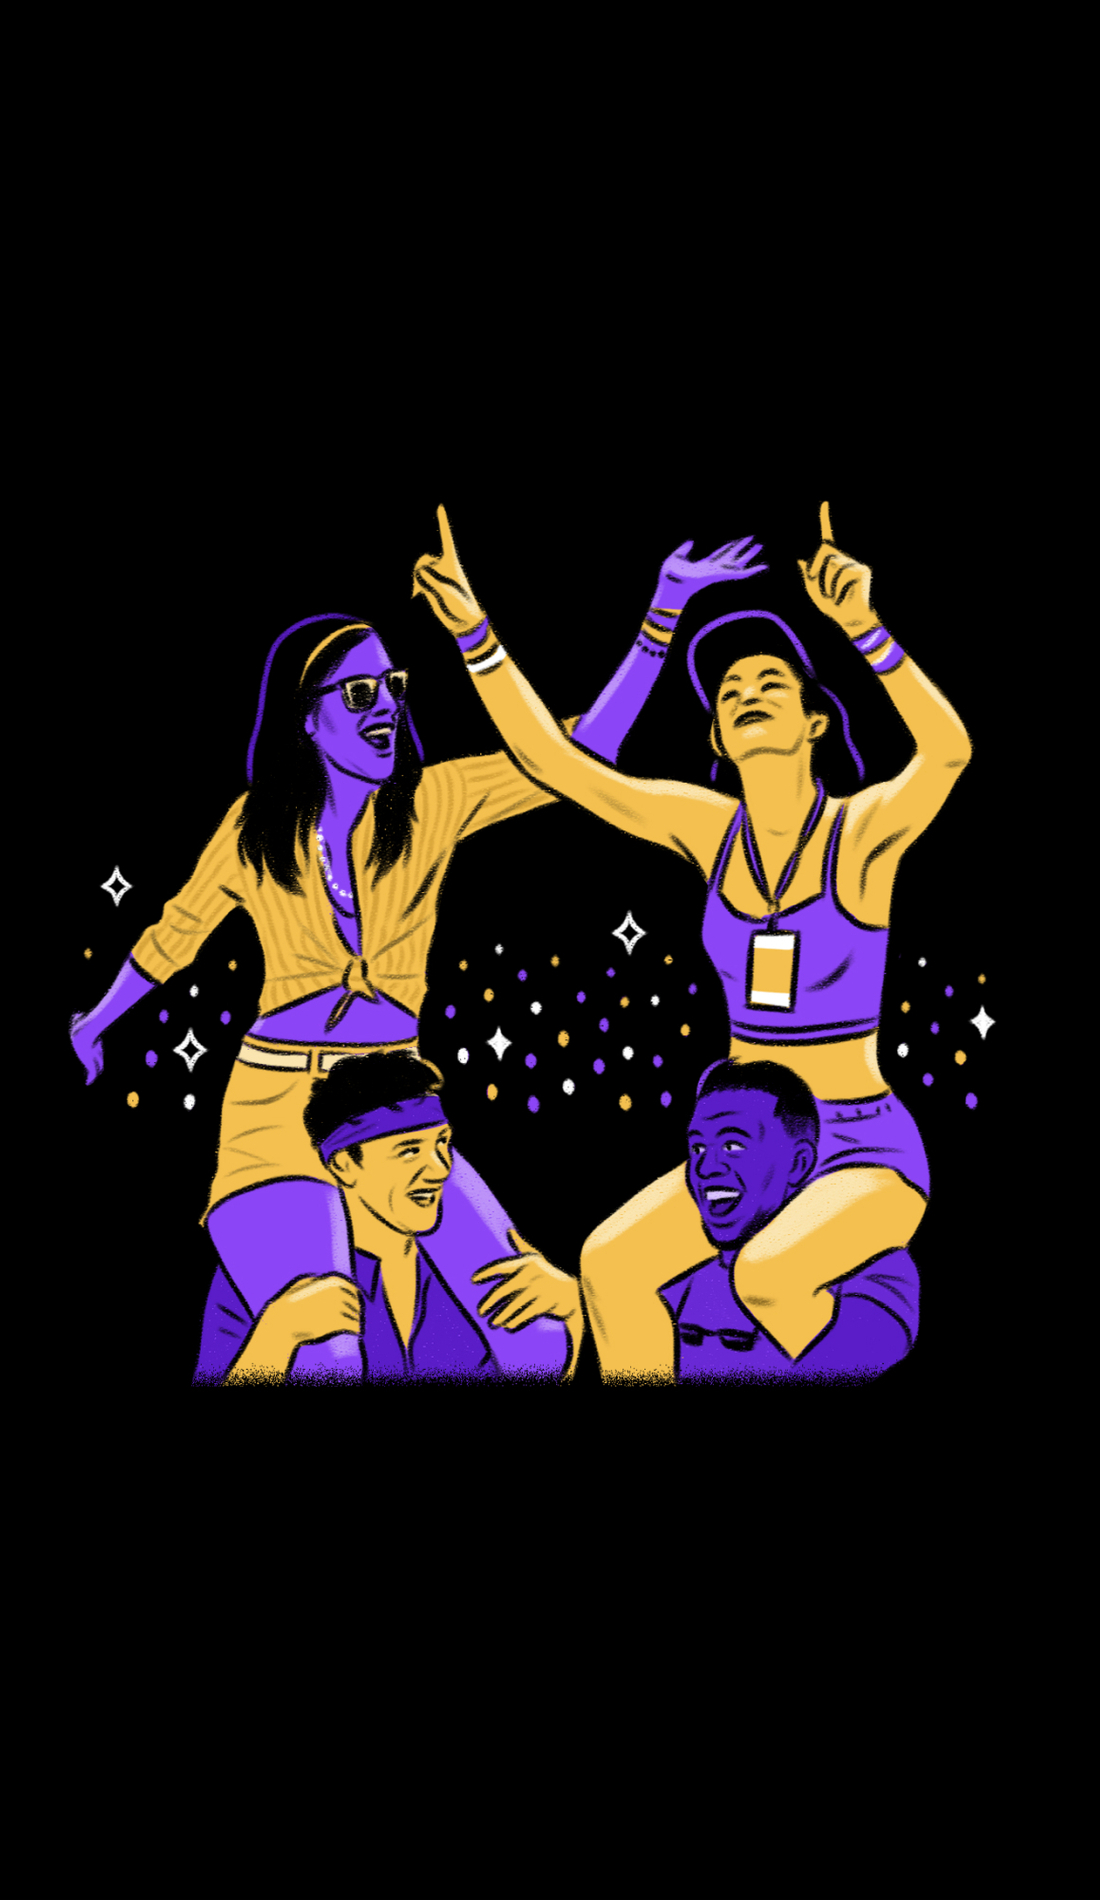 A Movement Electronic Music Festival live event